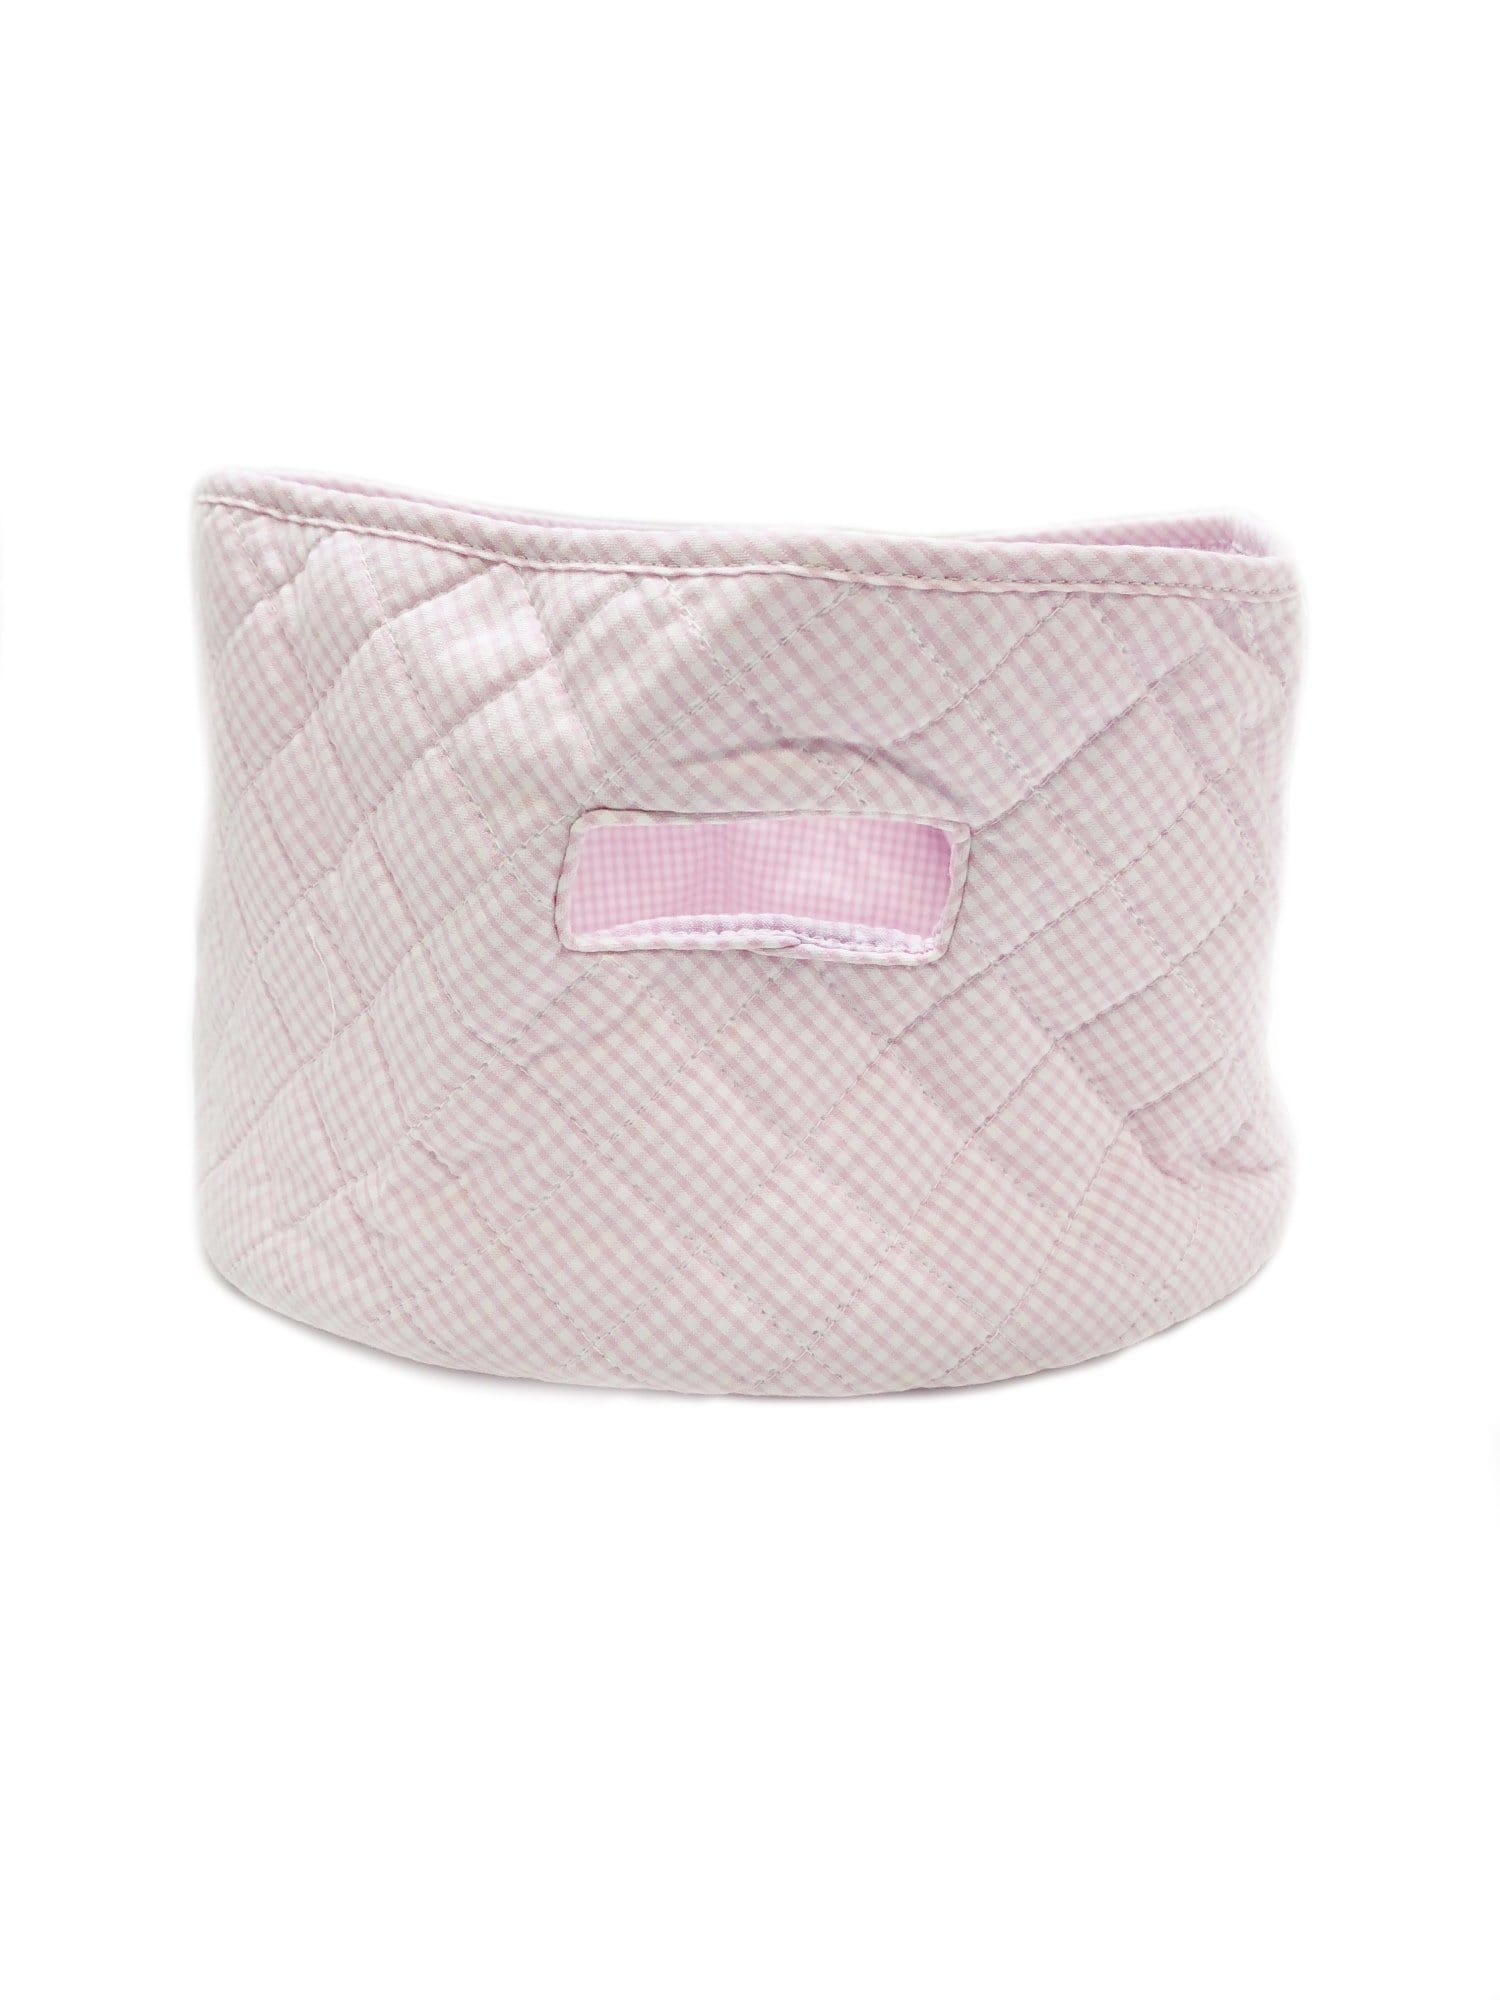 Nursery Basket-Pink